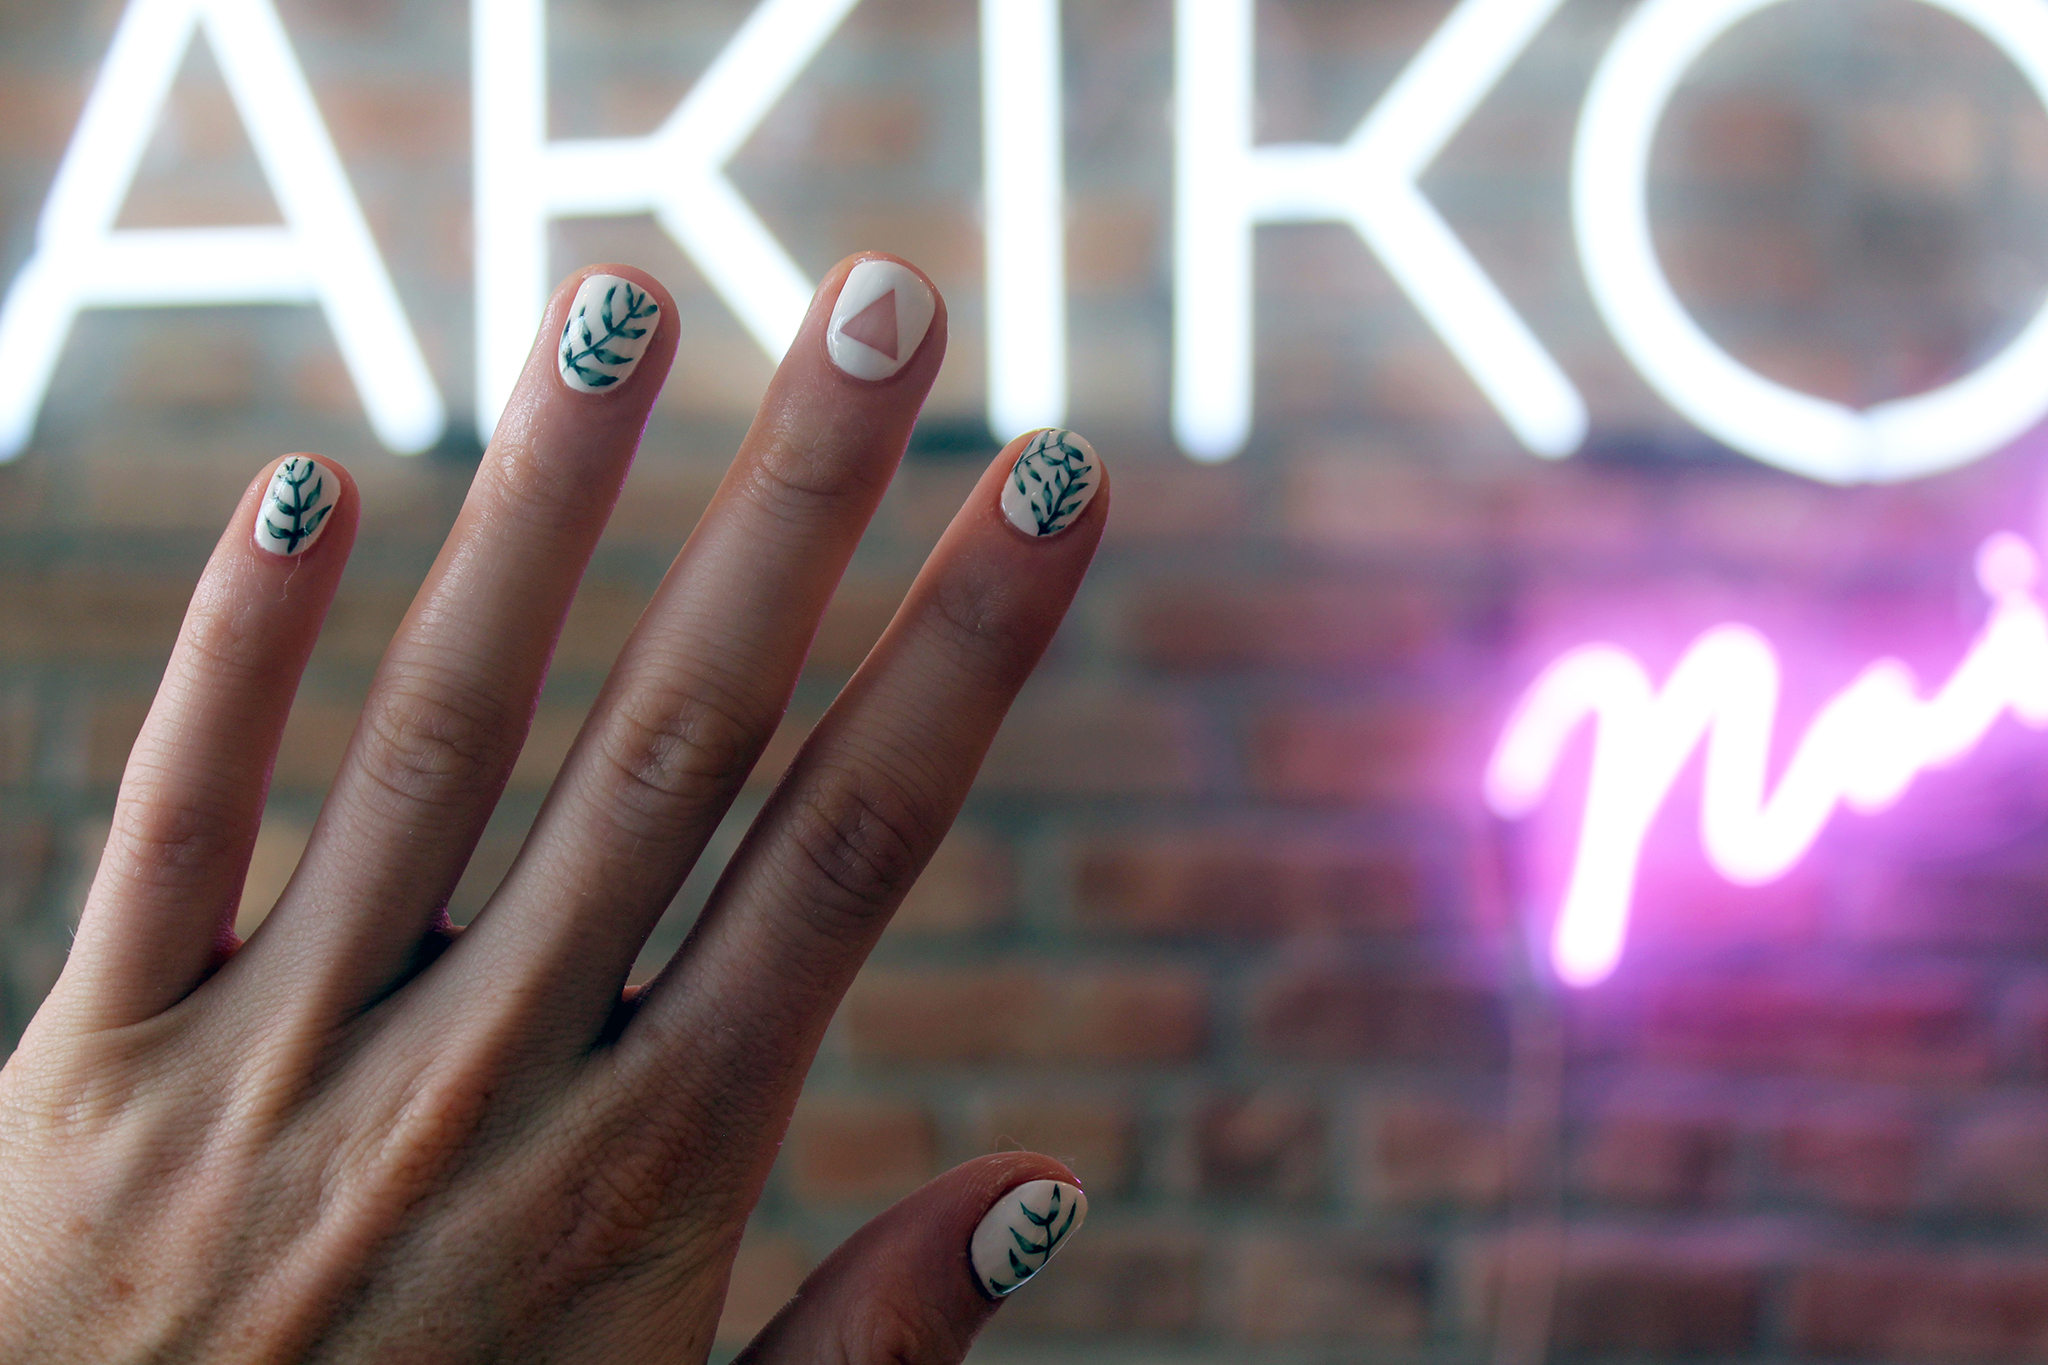 Nail salons in nyc for manicures pedicures and nail designs akiko nails nail salon solutioingenieria